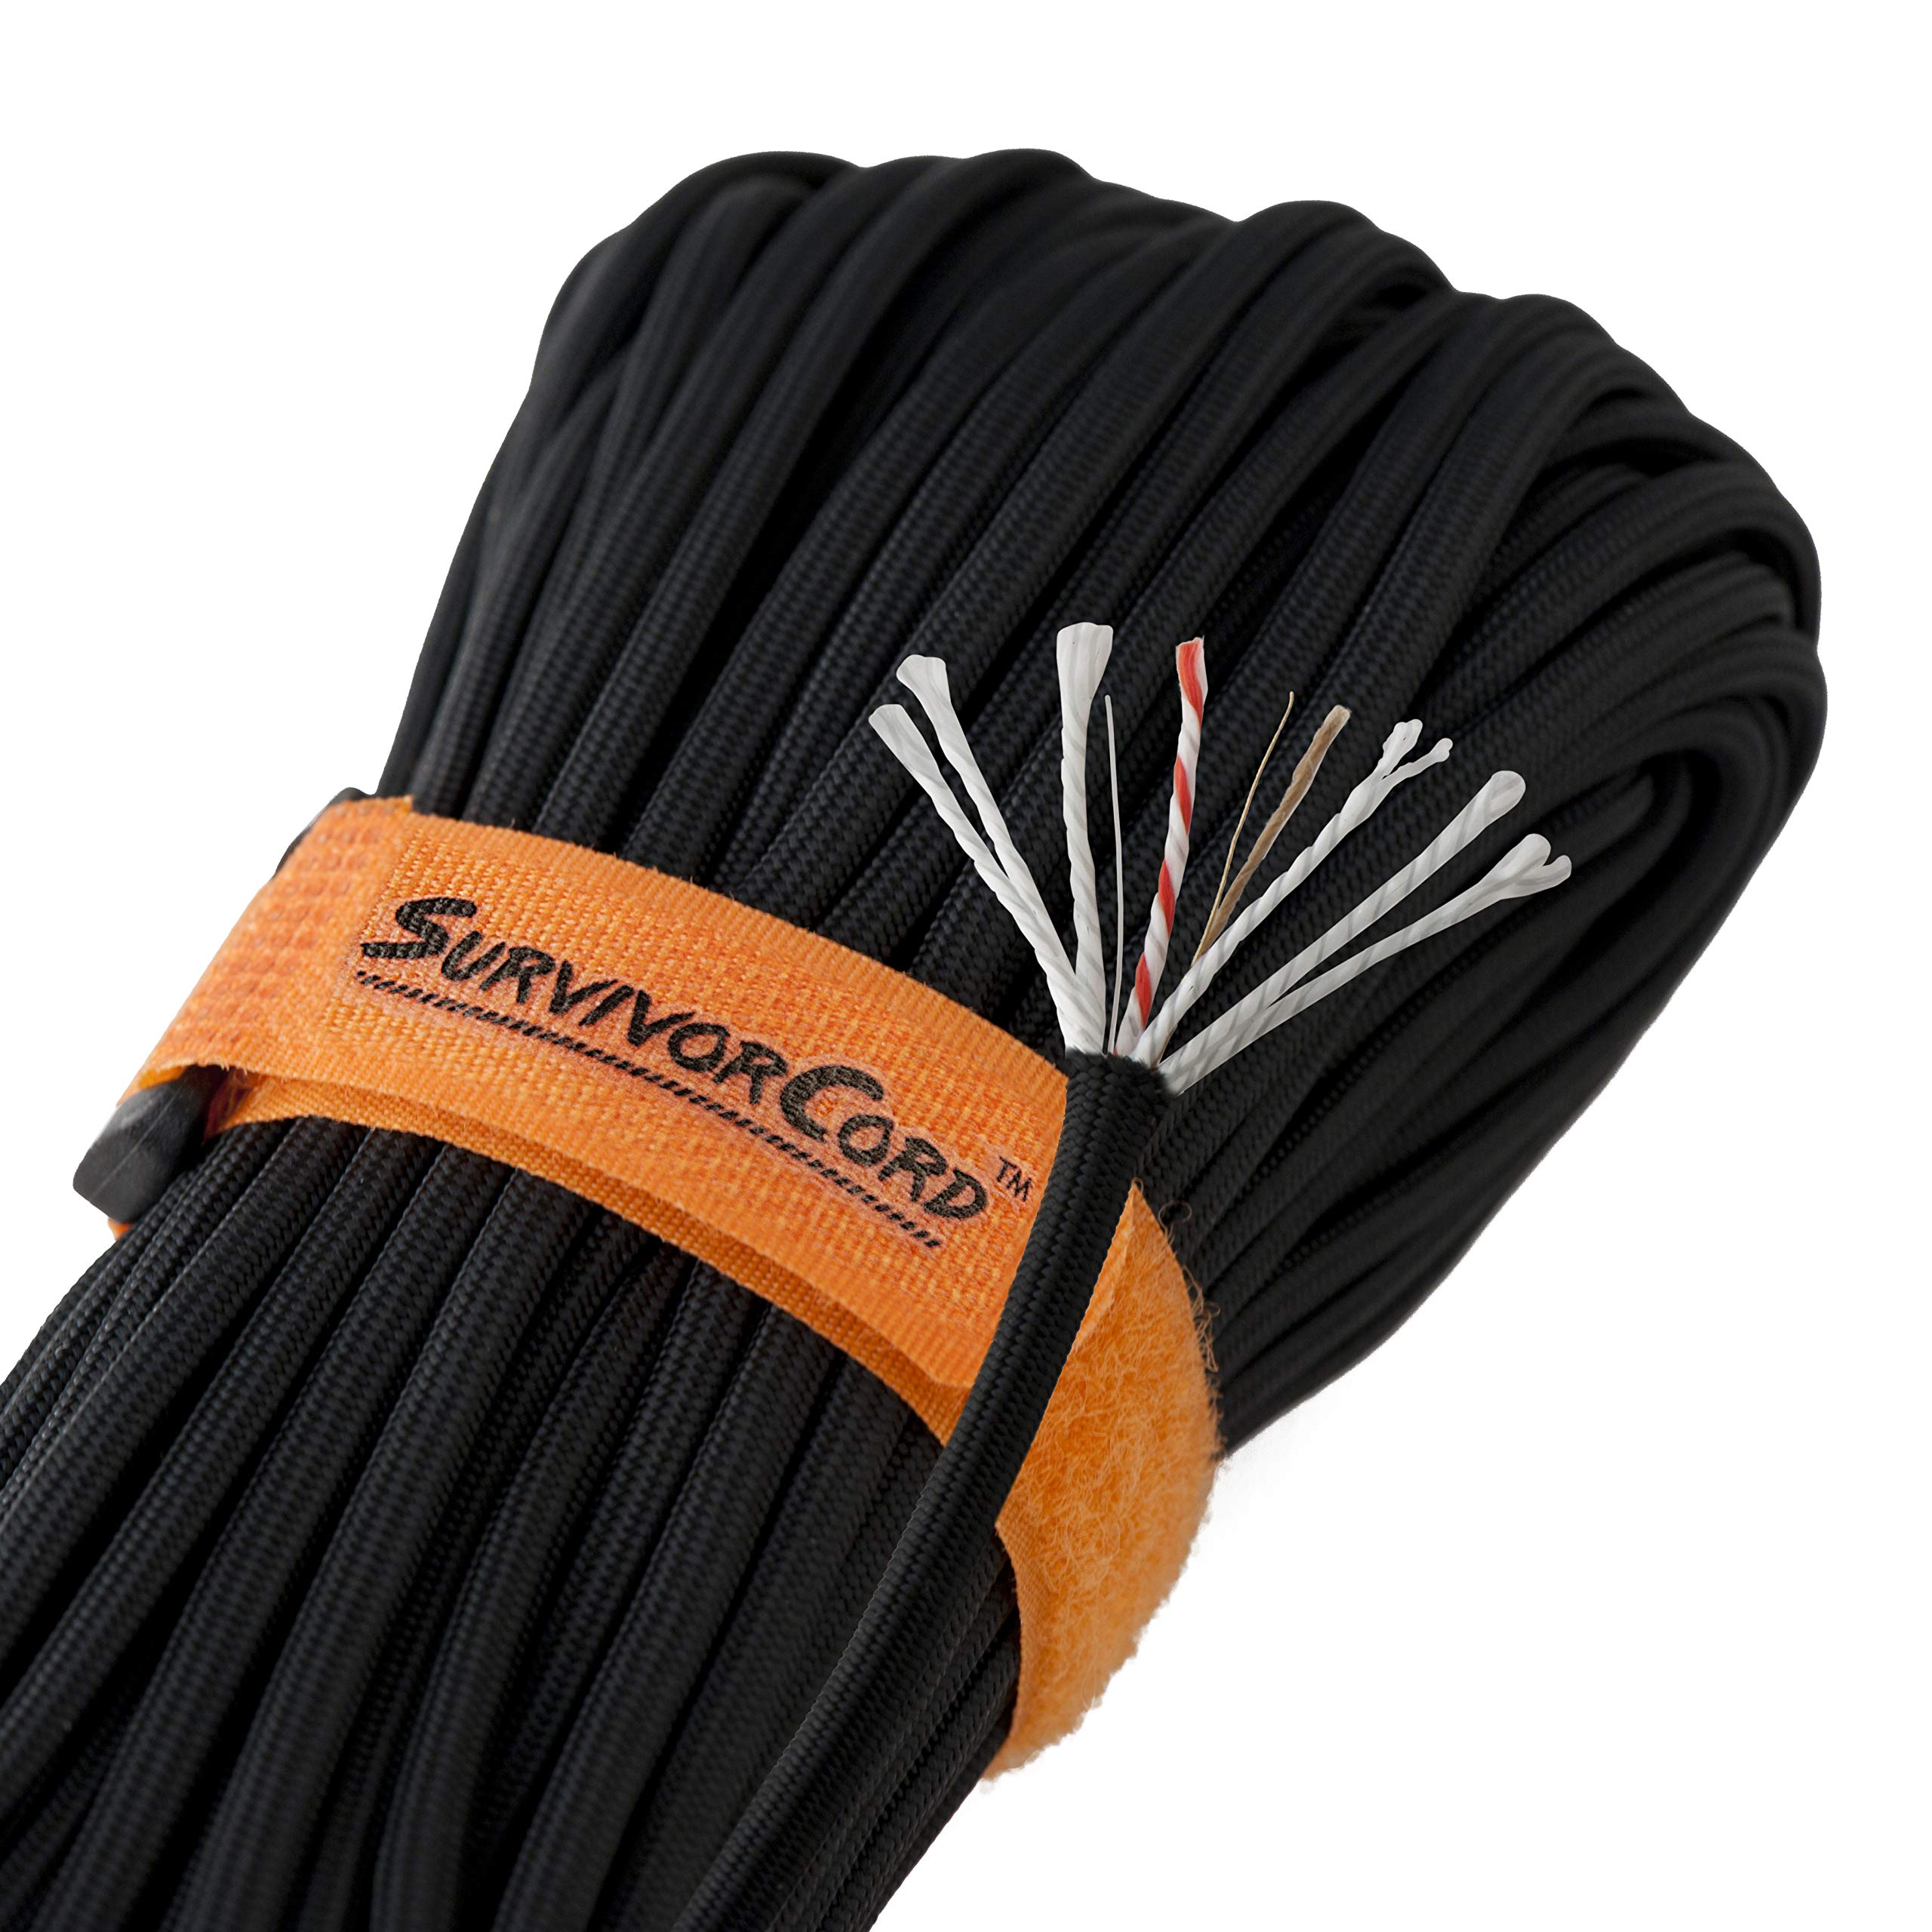 Titan SurvivorCord | Black | 103 Feet | Patented Military Type III 550 Paracord/Parachute Cord (3/16'' Diameter) with Integrated Fishing Line, Fire-Starter, and Utility Wire. by Titan Paracord (Image #1)